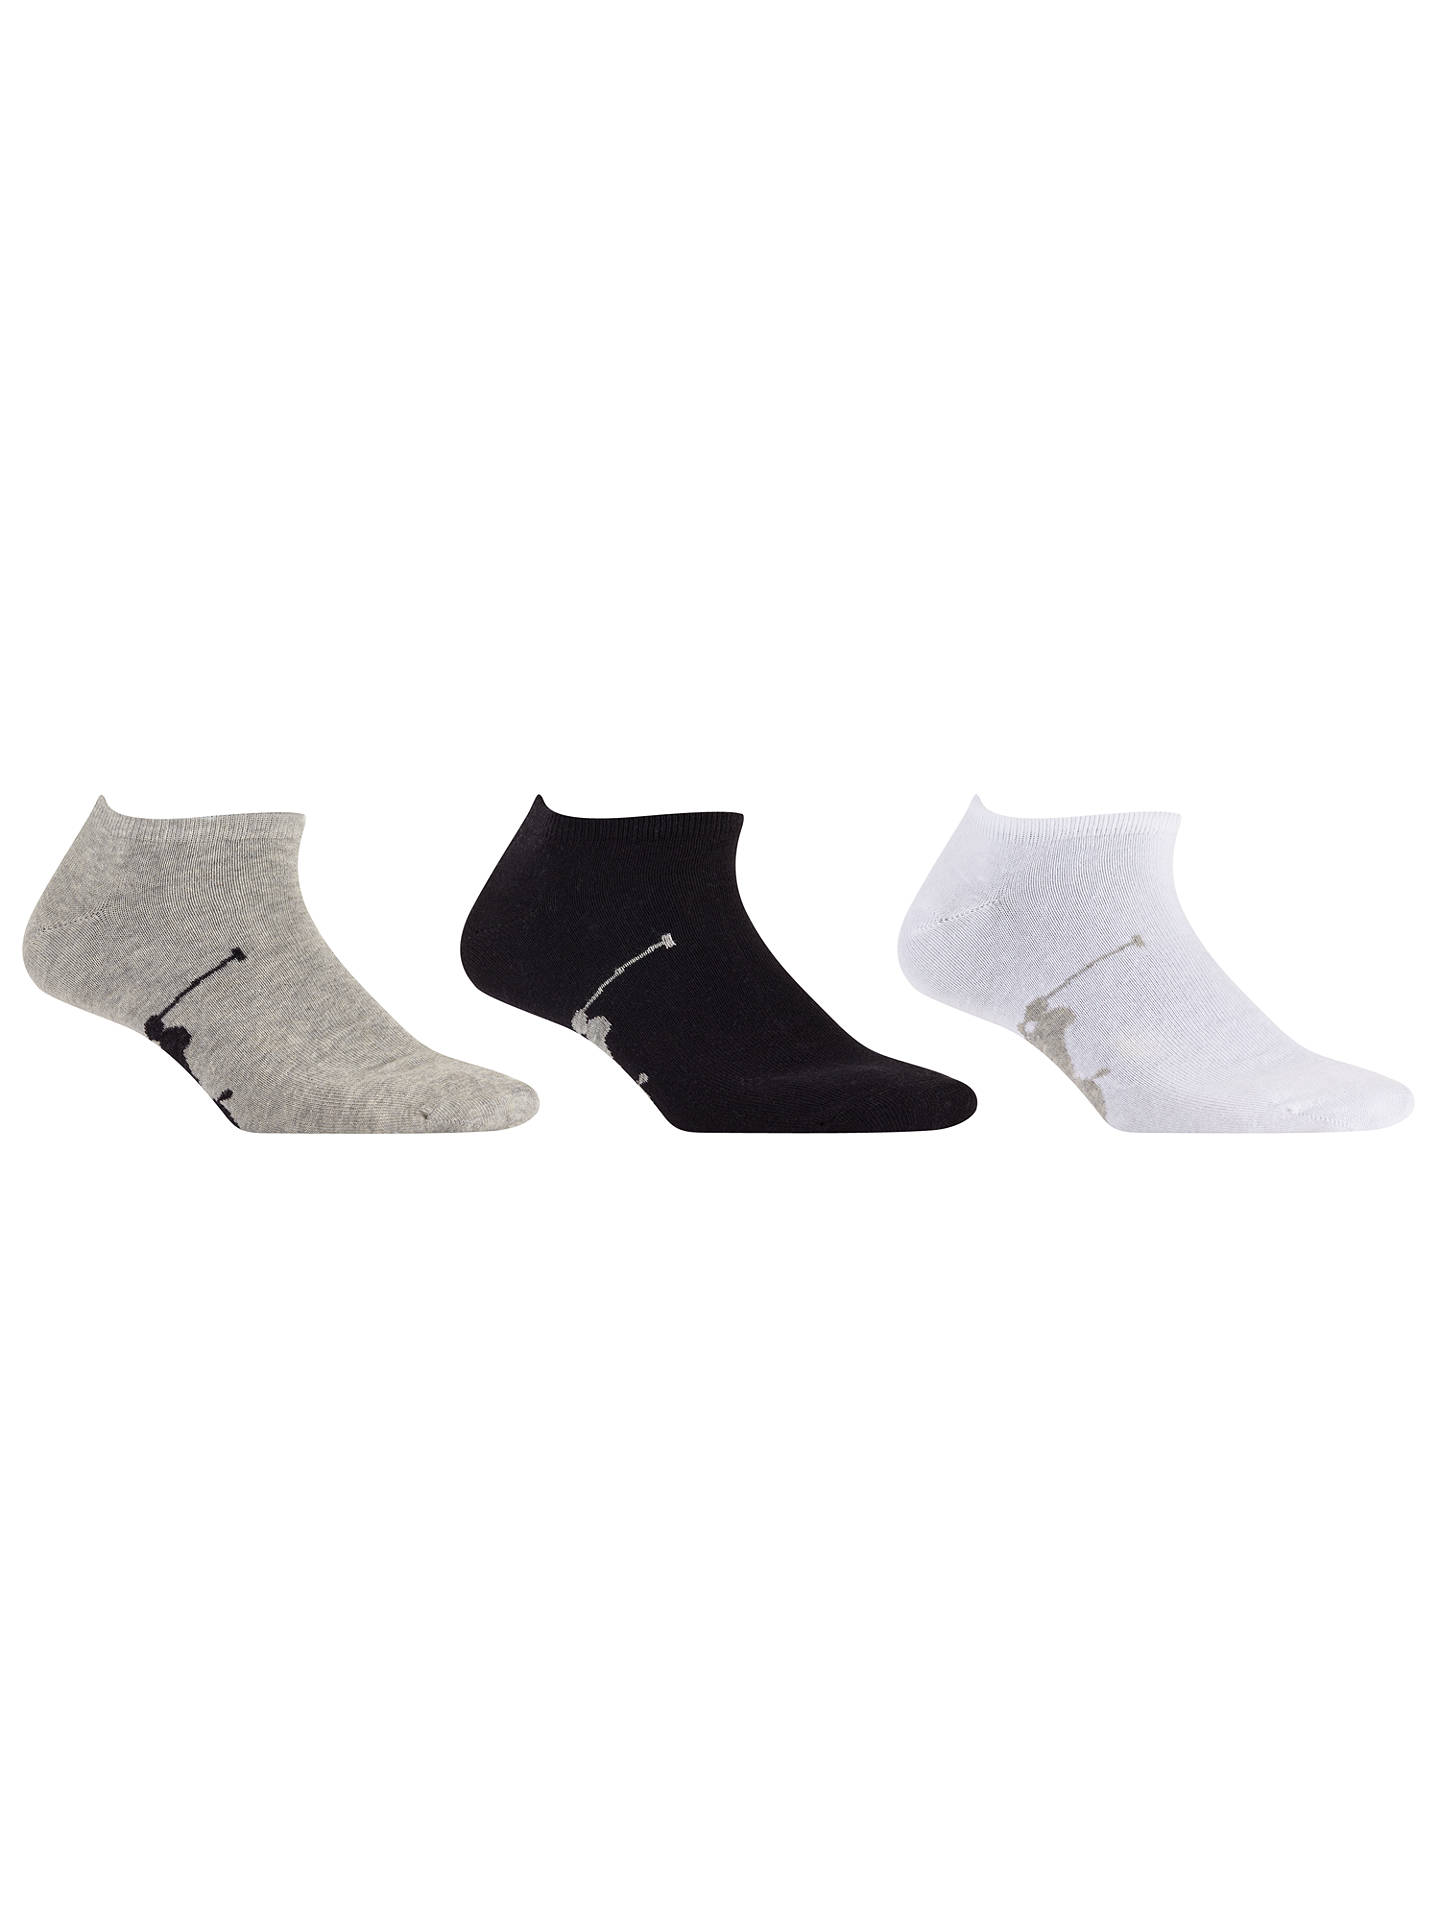 BuyPolo Ralph Lauren Trainer Socks, One Size, Pack of 3, White/Grey/Black Online at johnlewis.com